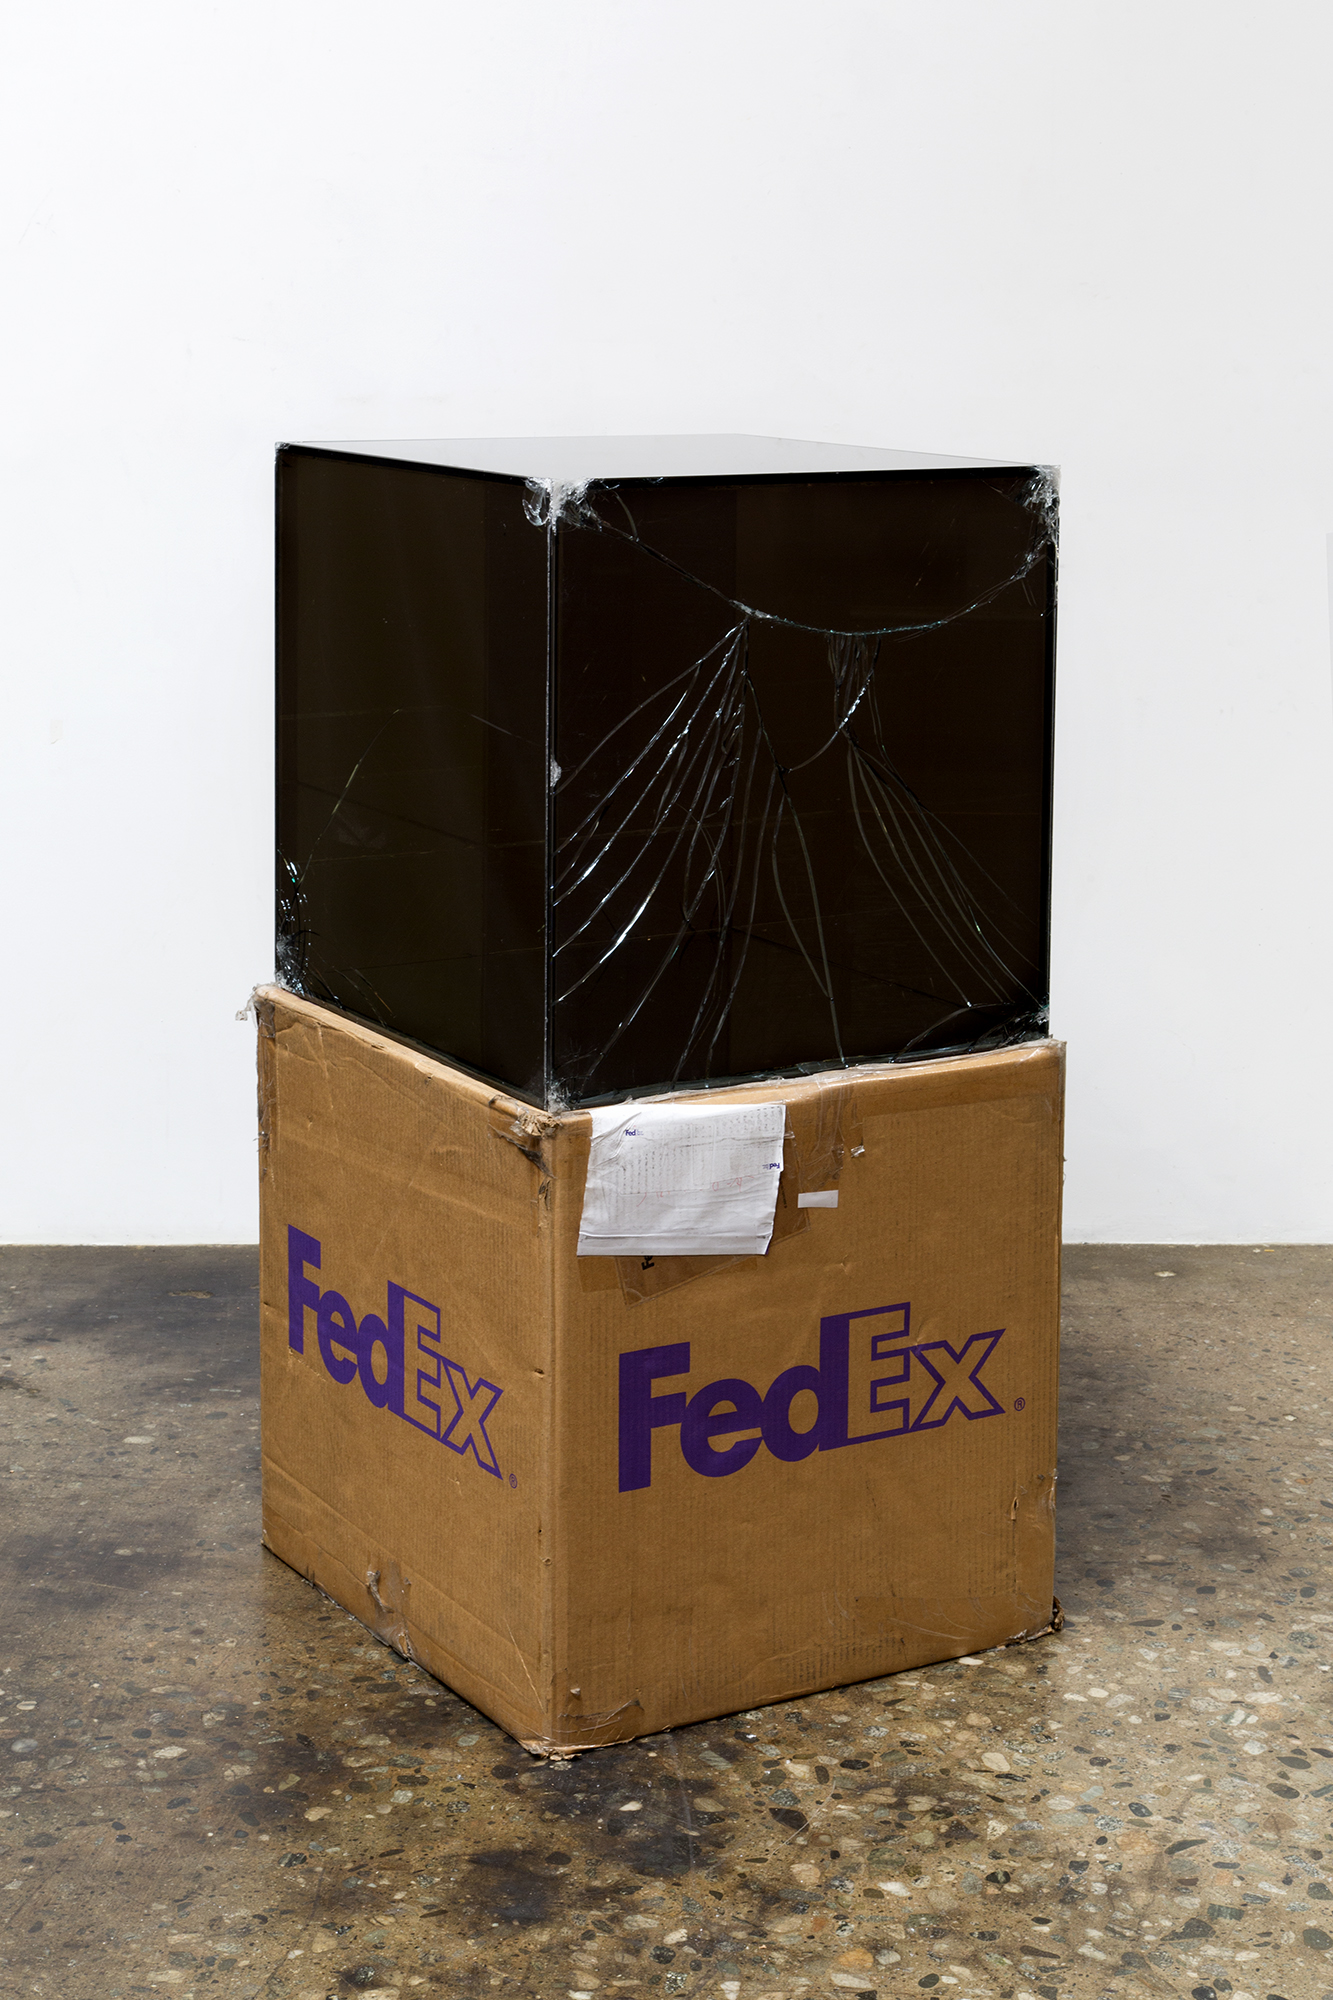 FedEx® Large Kraft Box  © 2008 FEDEX 330510 REV 6/08 GP, International Priority, Los Angeles–Tokyo trk#778608488323, March 9–13, 2017, International Priority, Tokyo–Los Angeles trk#805795452215, July 13–14, 2017   2017–  laminated Mirropane, FedEx shipping box, accrued FedEx shipping and tracking labels, silicone, metal, tape  24 x 24 x 24 inches   Transparencies, 2017